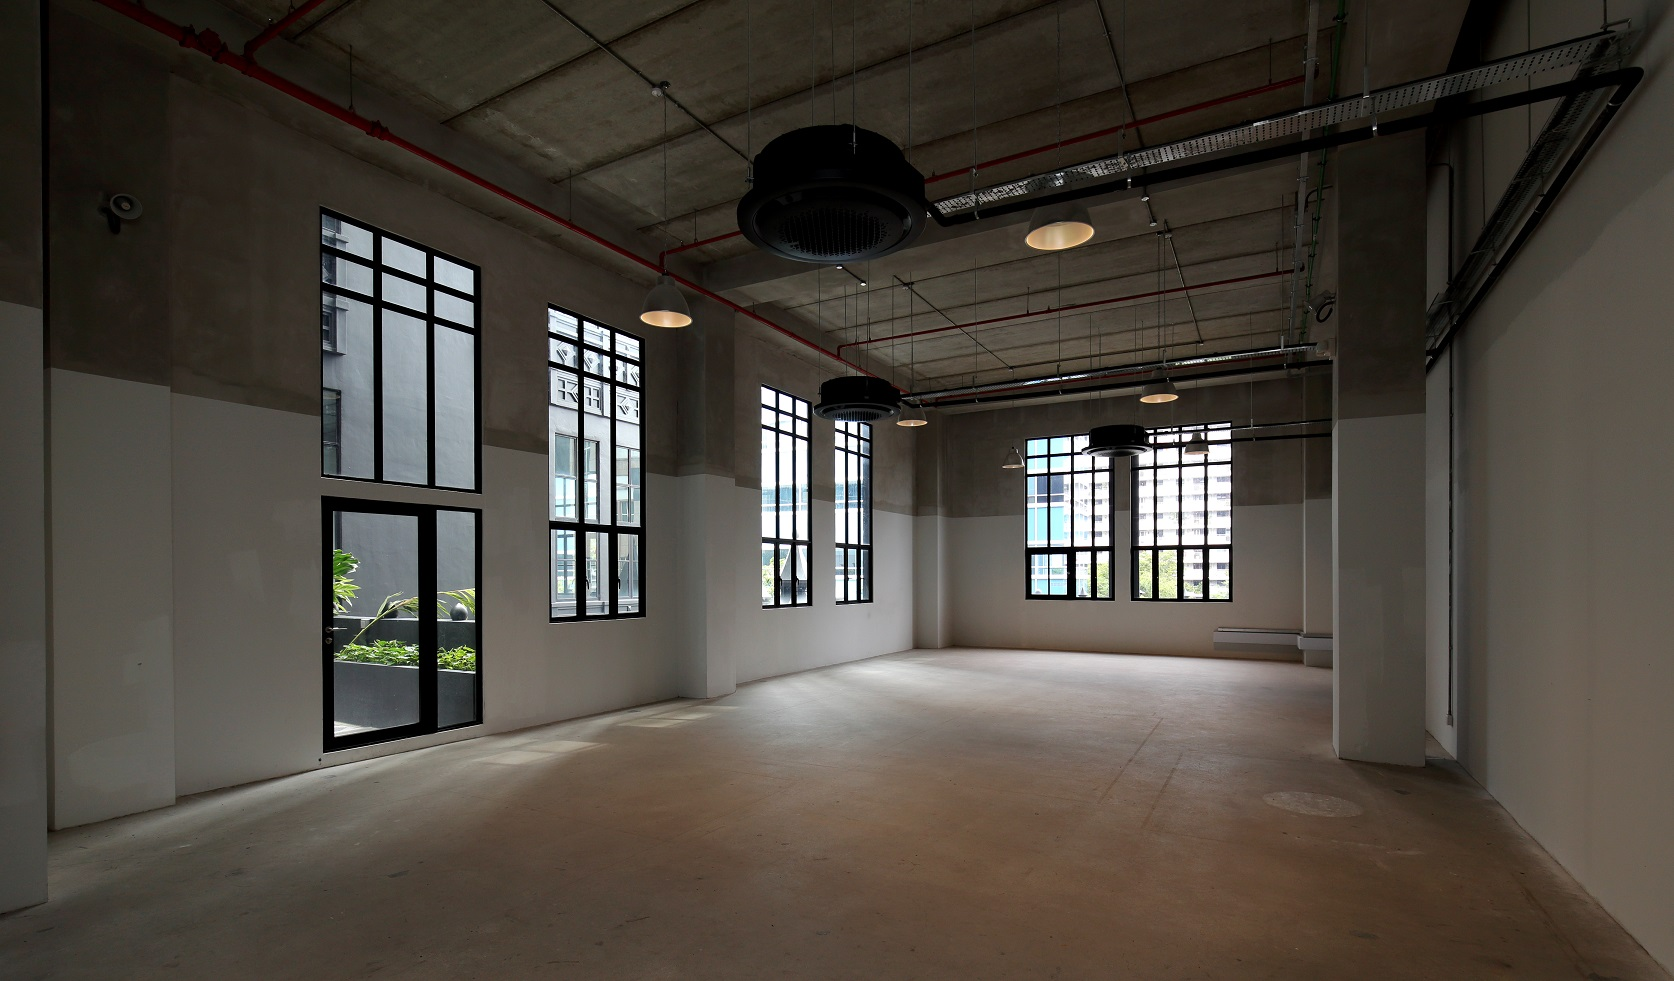 A typical office unit at The Mill has 6m ceiling height and 2.4m tall windows. The units on the second level have approval for F&B use (Photo: Samuel Isaac Chua/EdgeProp Singapore)